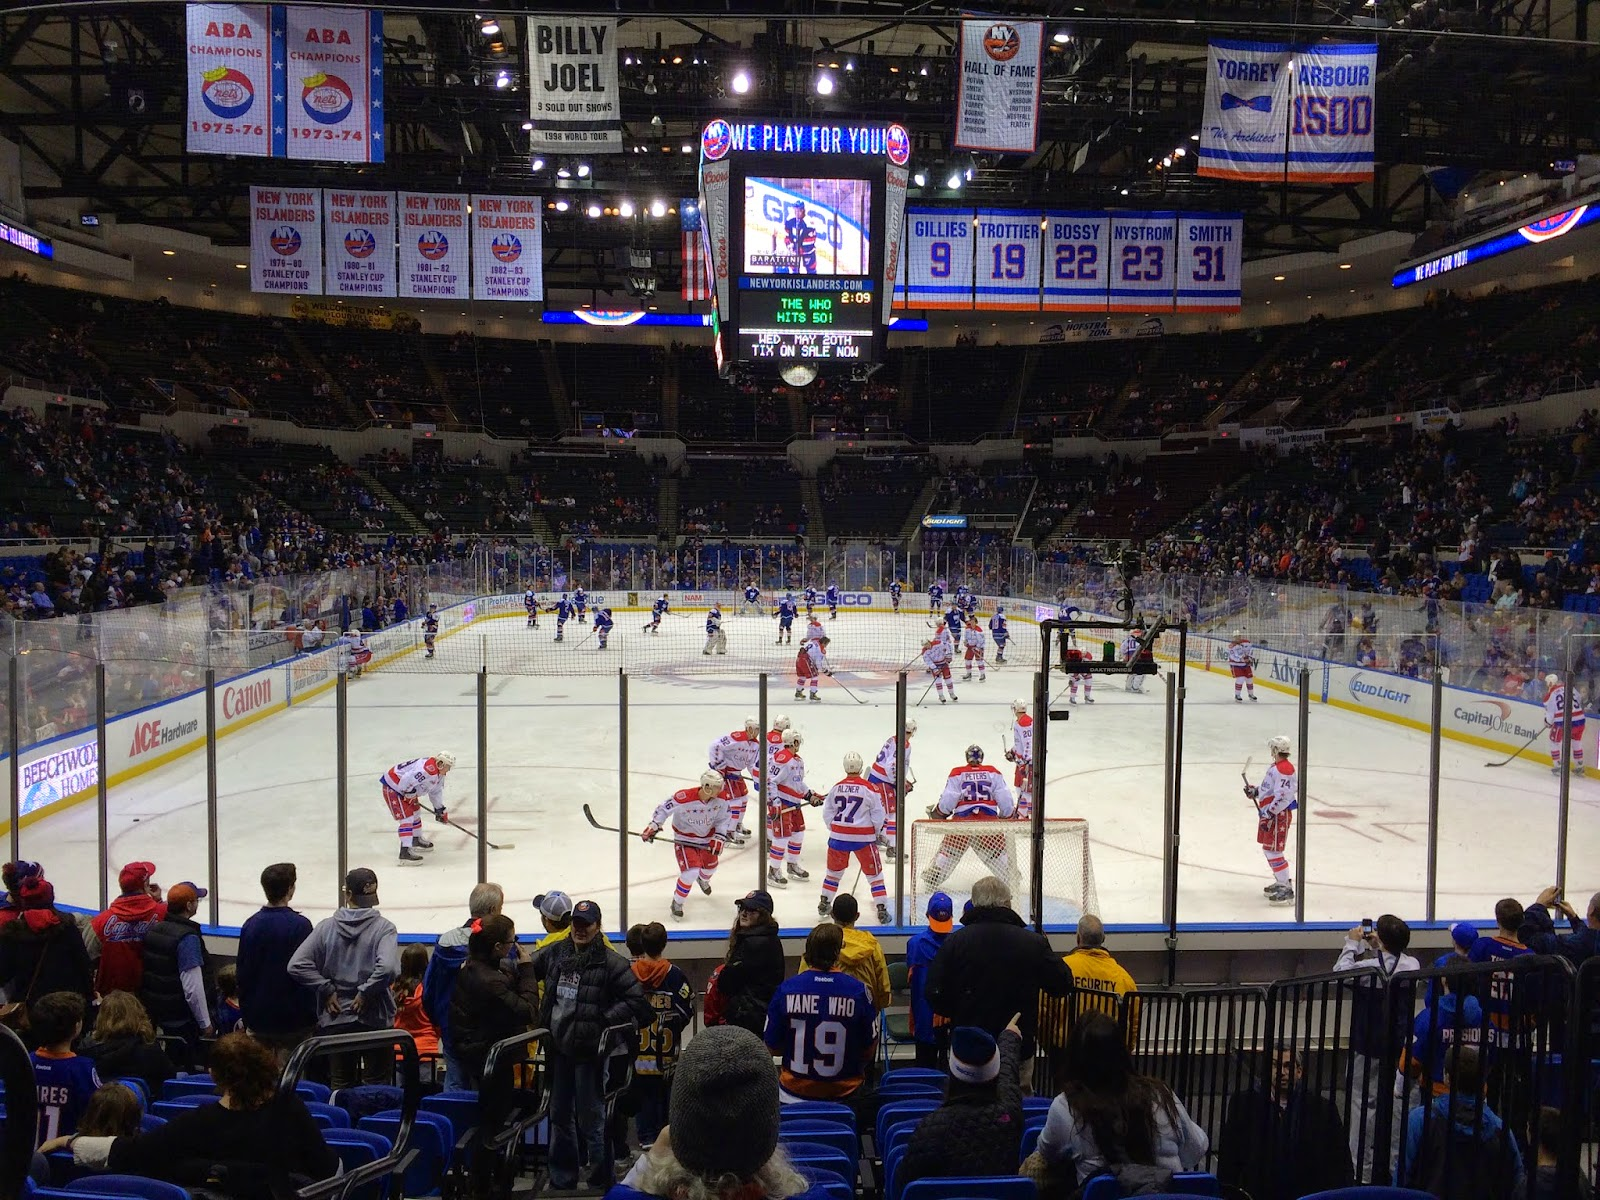 New York Islanders vs Washington Capitals